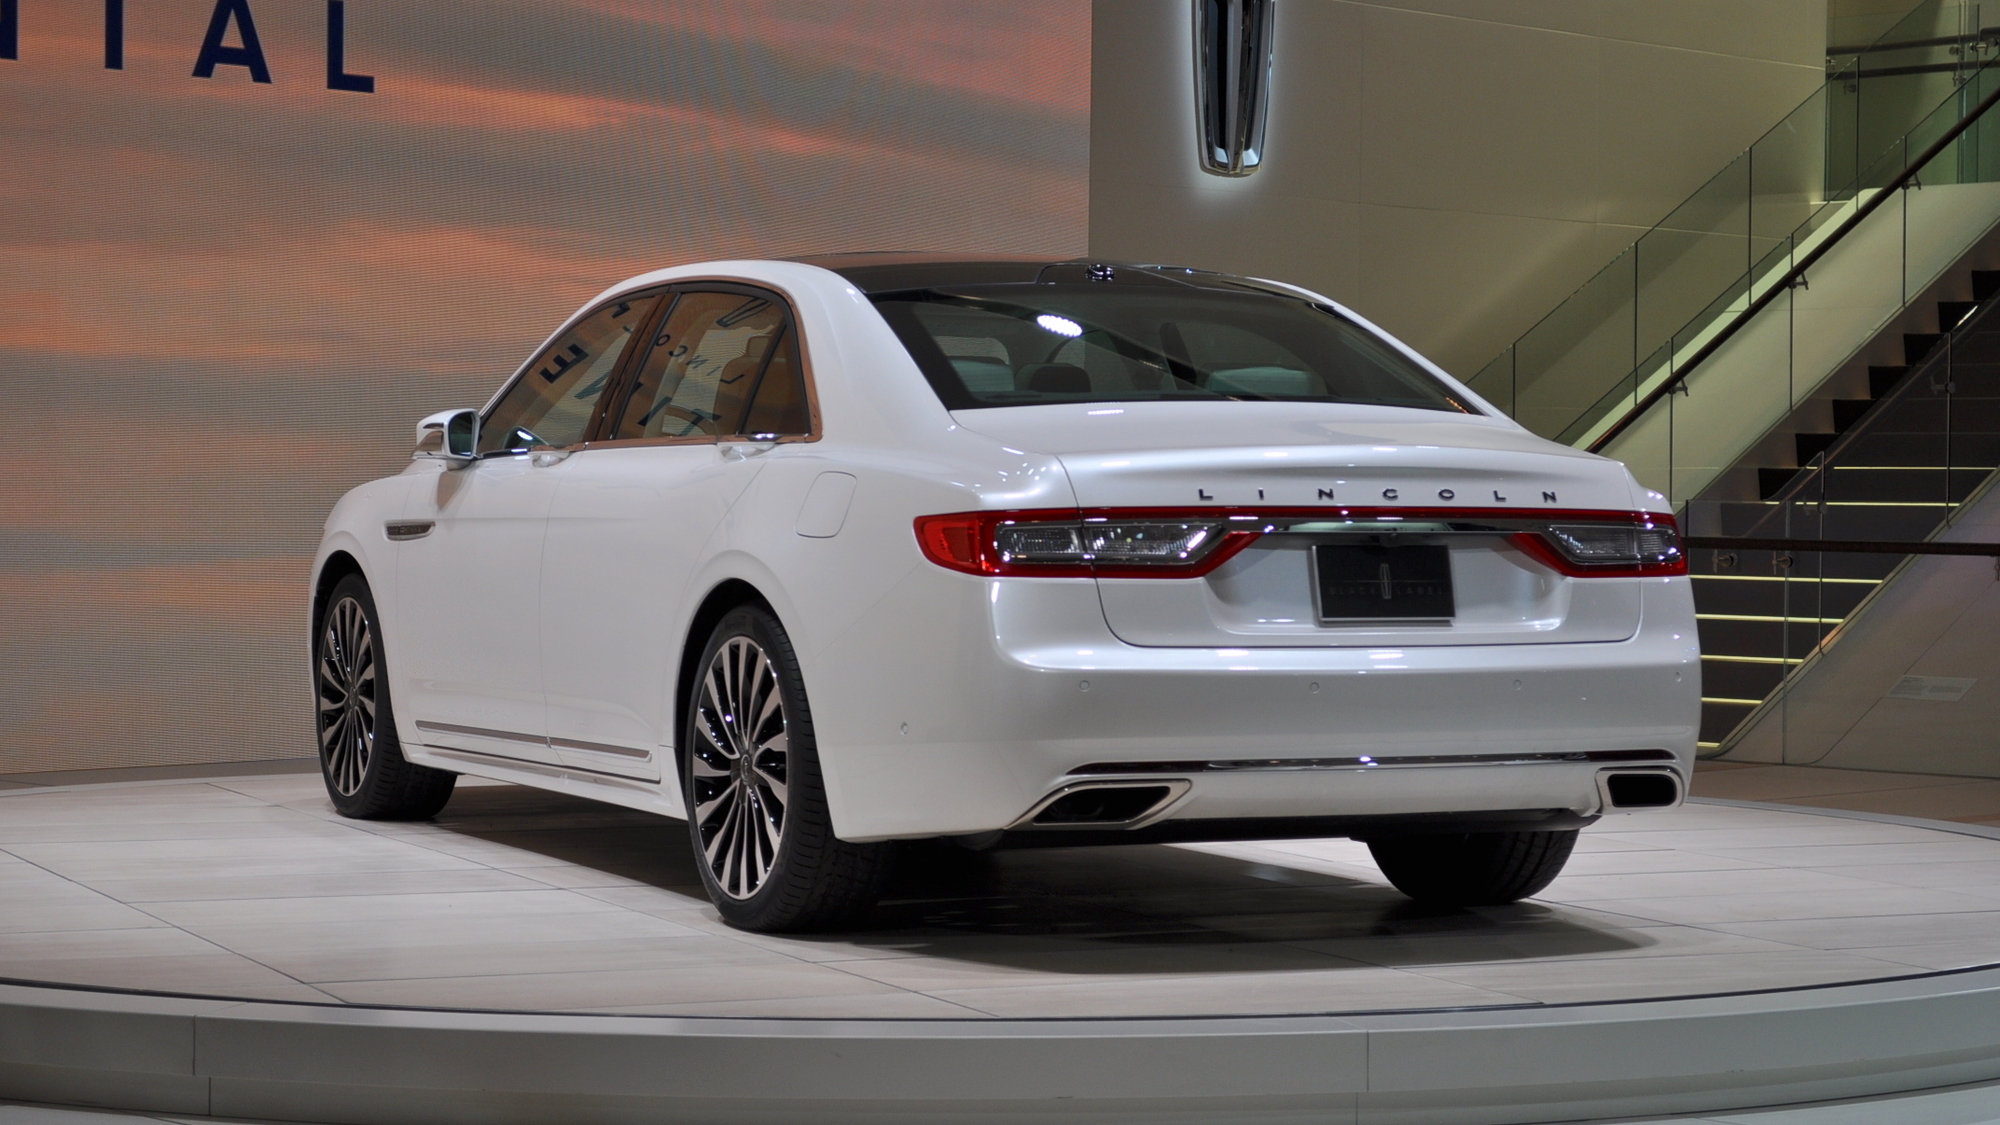 2017 Lincoln Continental, 2016 Detroit Auto Show